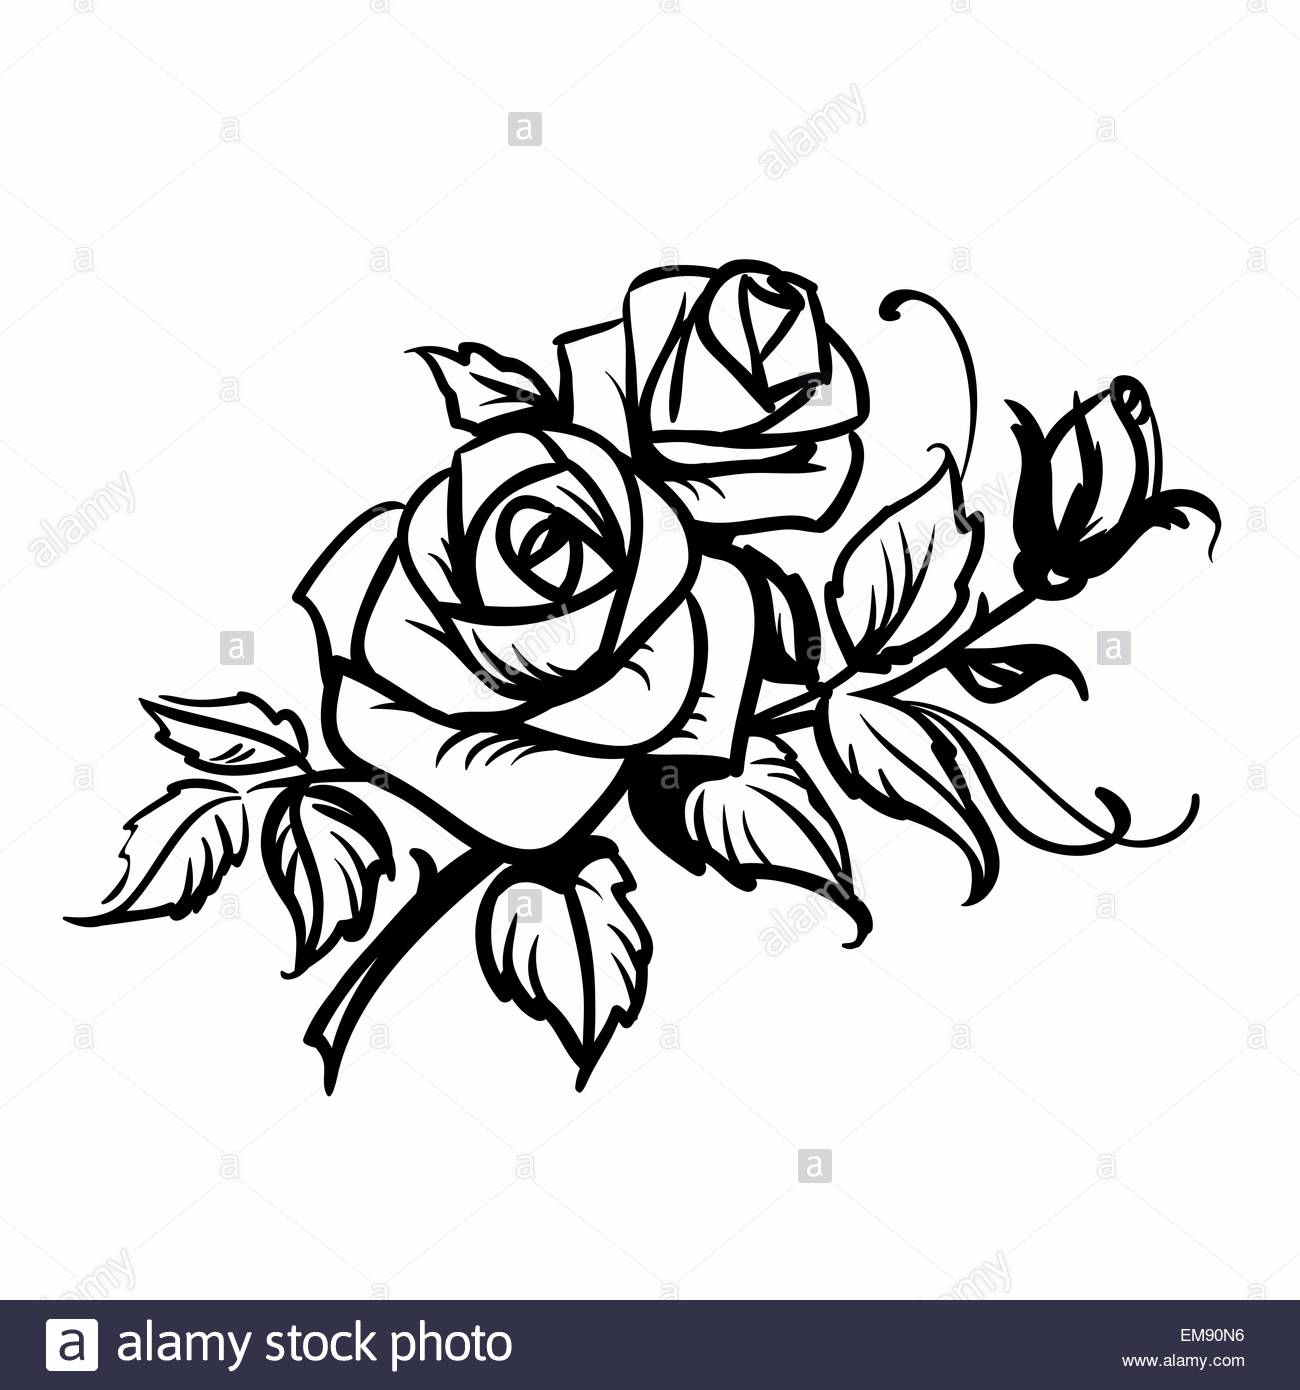 1300x1390 Roses. Black Outline Drawing On White Background Stock Vector Art